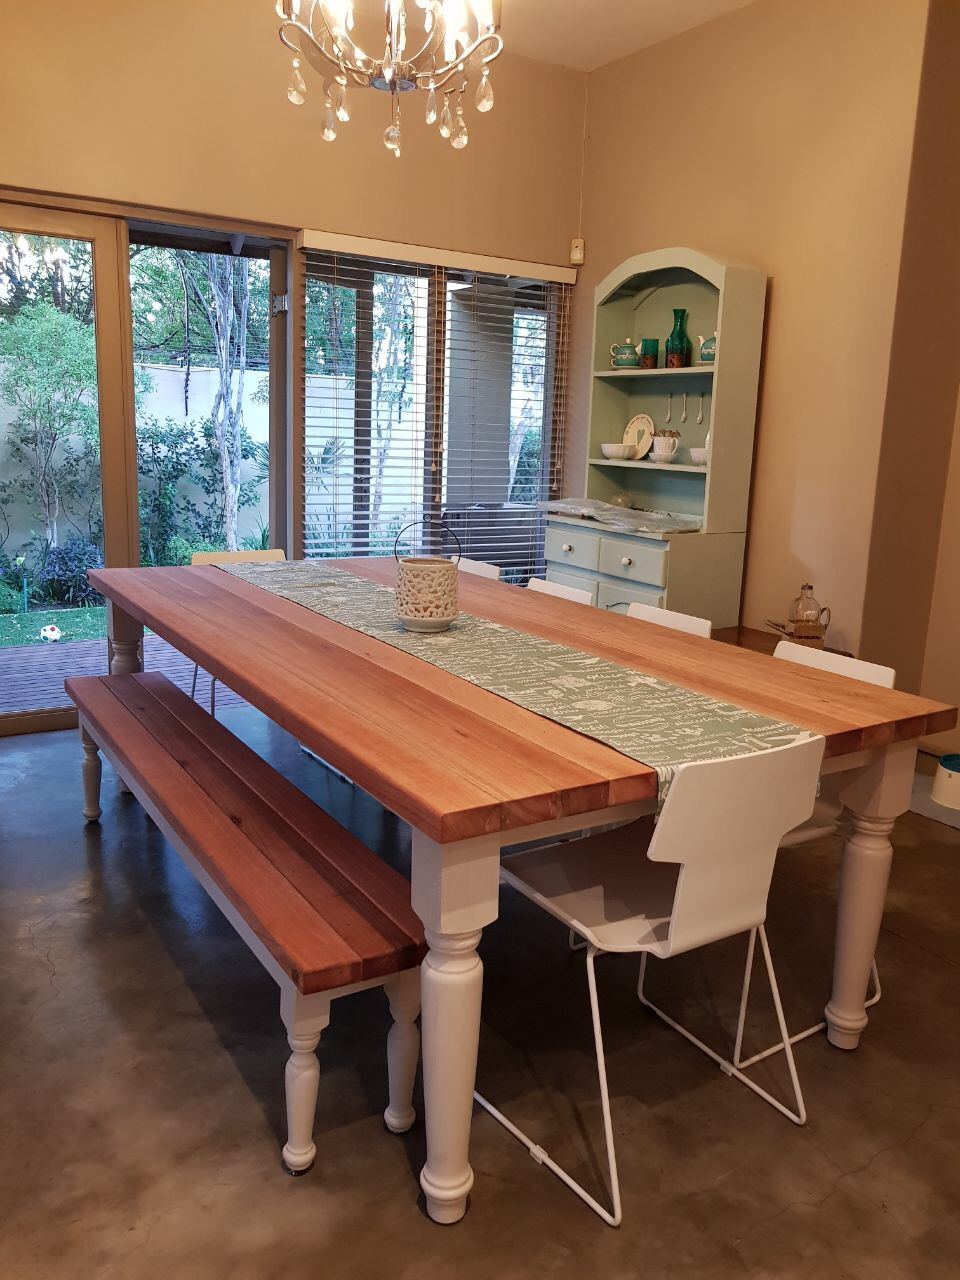 8 Seater Dining Tables Junk Mail